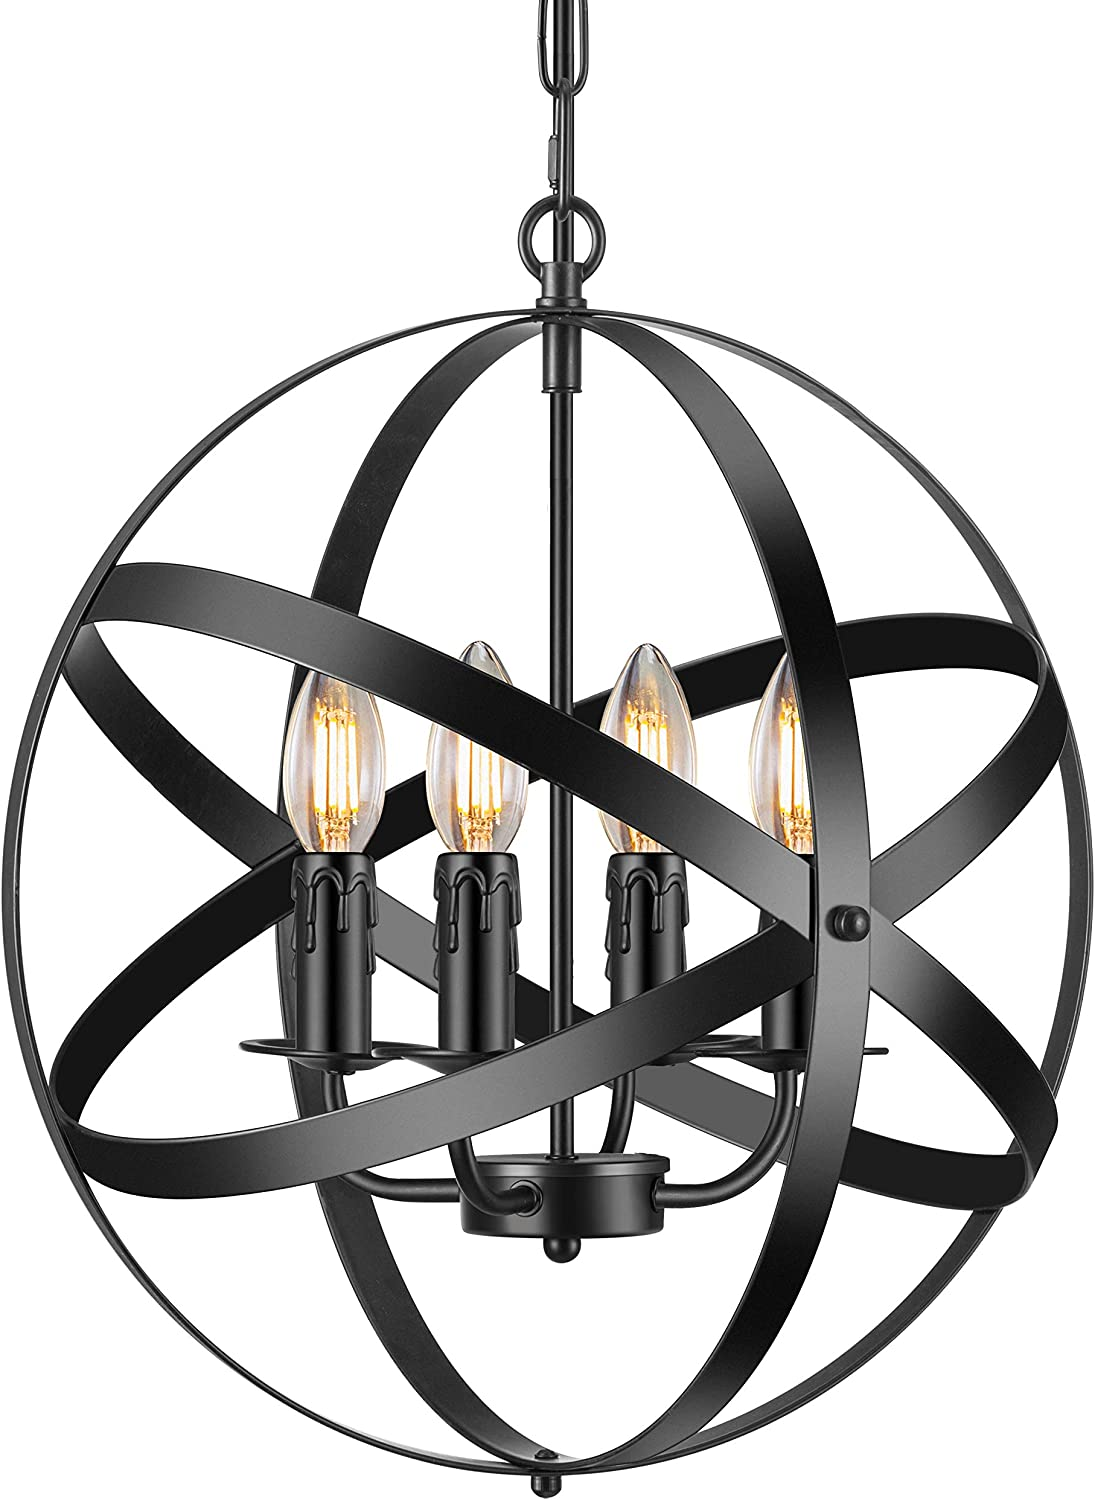 Industrial Pendant Max 88% OFF Light Topics on TV Vintage Spherical with Lighting